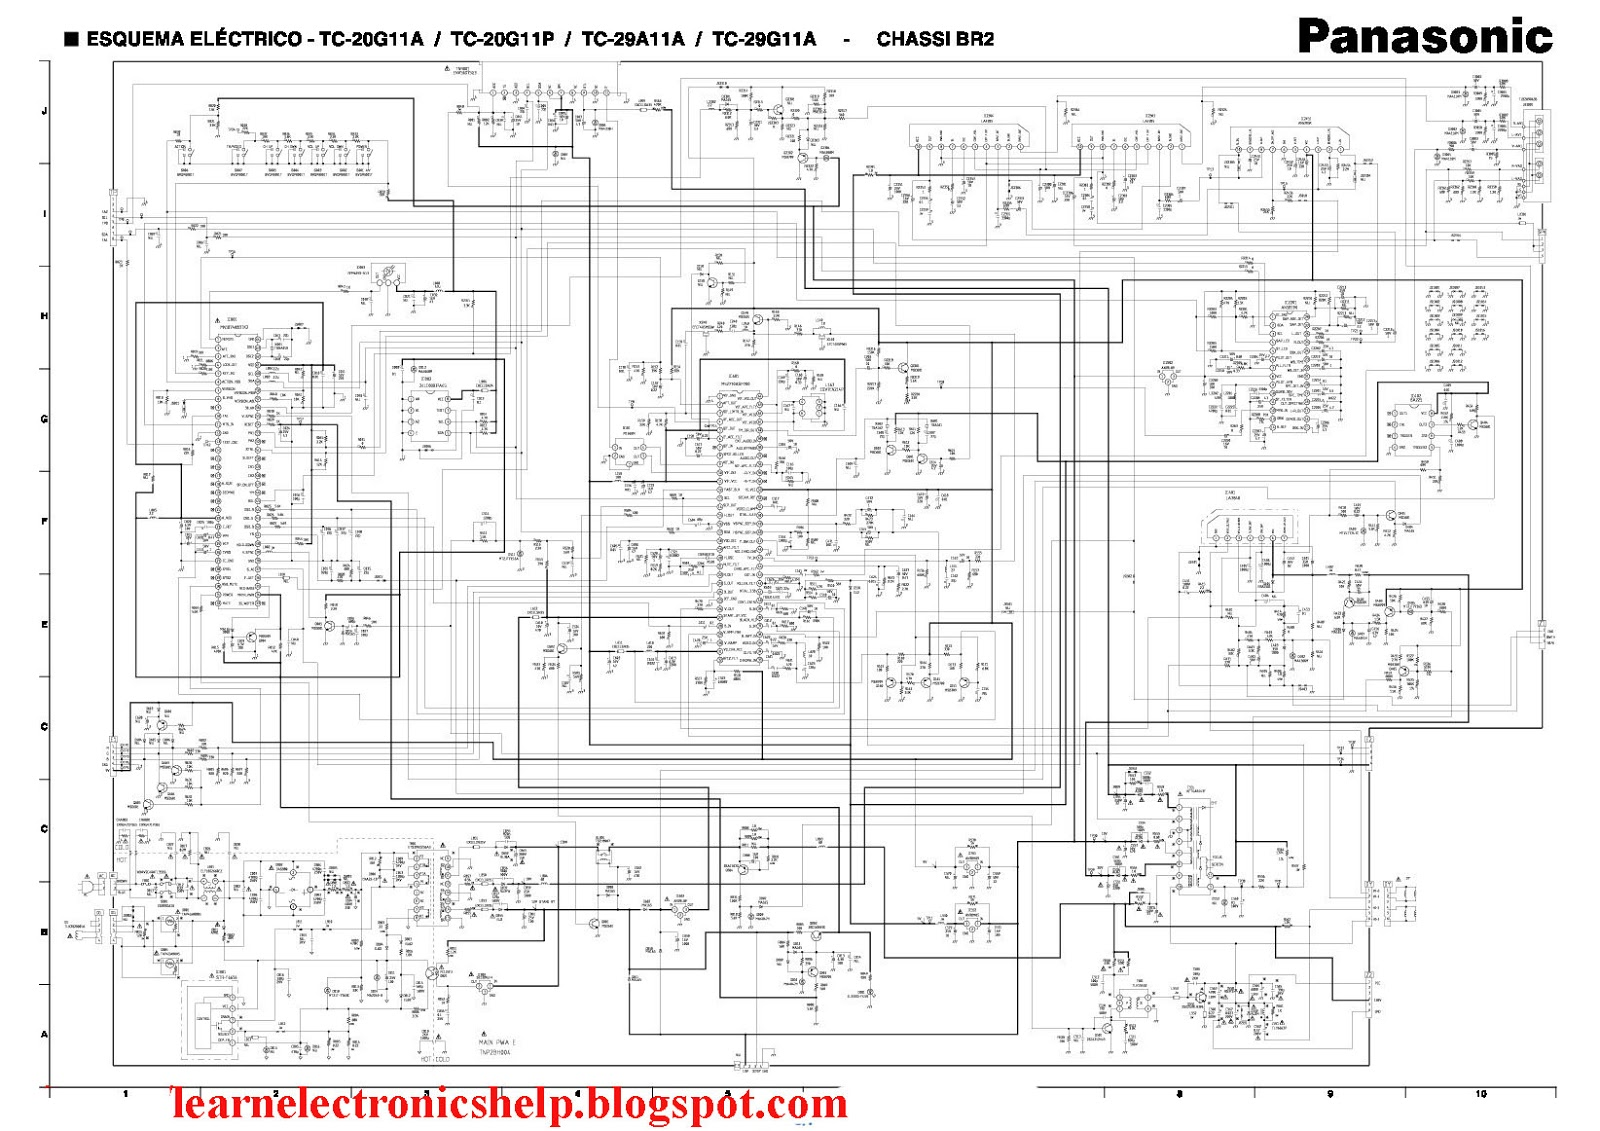 RADIO WIRING DIAGRAM FOR PANASONIC CQ 5300U - Auto Electrical Wiring on freightliner lookup parts diagram, 2006 freightliner wiring diagram, freightliner xc chassis wiring diagram, 2000 freightliner wiring diagram, 2006 freightliner columbia heater diagram, 1997 freightliner wiring diagram, freightliner radio wiring diagram, freightliner ac wiring diagram, freightliner columbia fuse box diagram, 1995 freightliner wiring diagram, 06 freightliner wiring diagram, cummins celect plus wiring diagram, 2007 freightliner wiring diagram, freightliner air system diagram, freightliner fuse panel diagram, 2003 freightliner columbia wiring diagram, hvac blower motor wiring diagram, freightliner truck parts diagram, 2008 freightliner wiring diagram, 2002 freightliner wiring diagram,